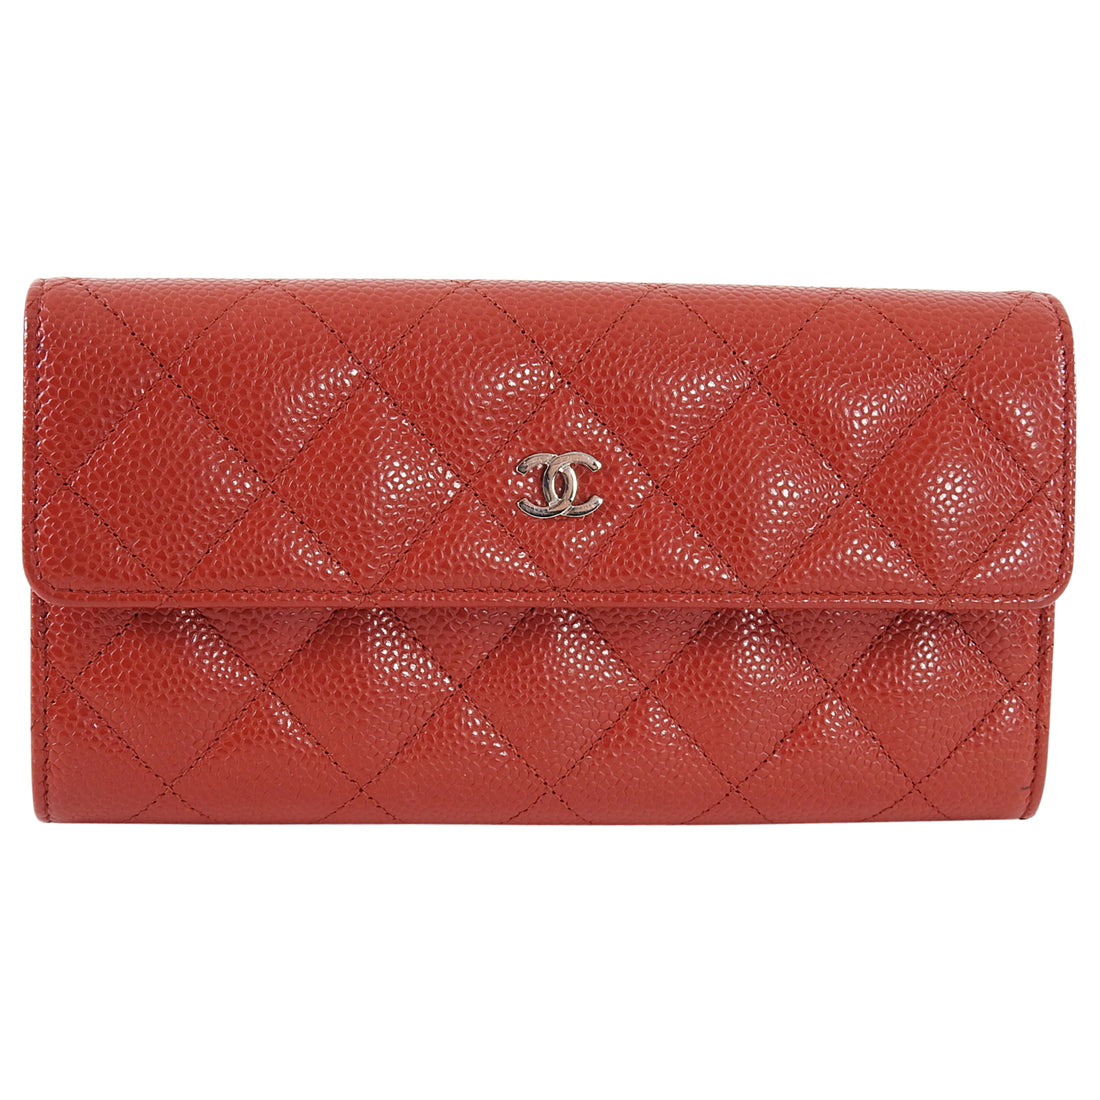 Chanel Caviar Quilt Continental CC Long Wallet